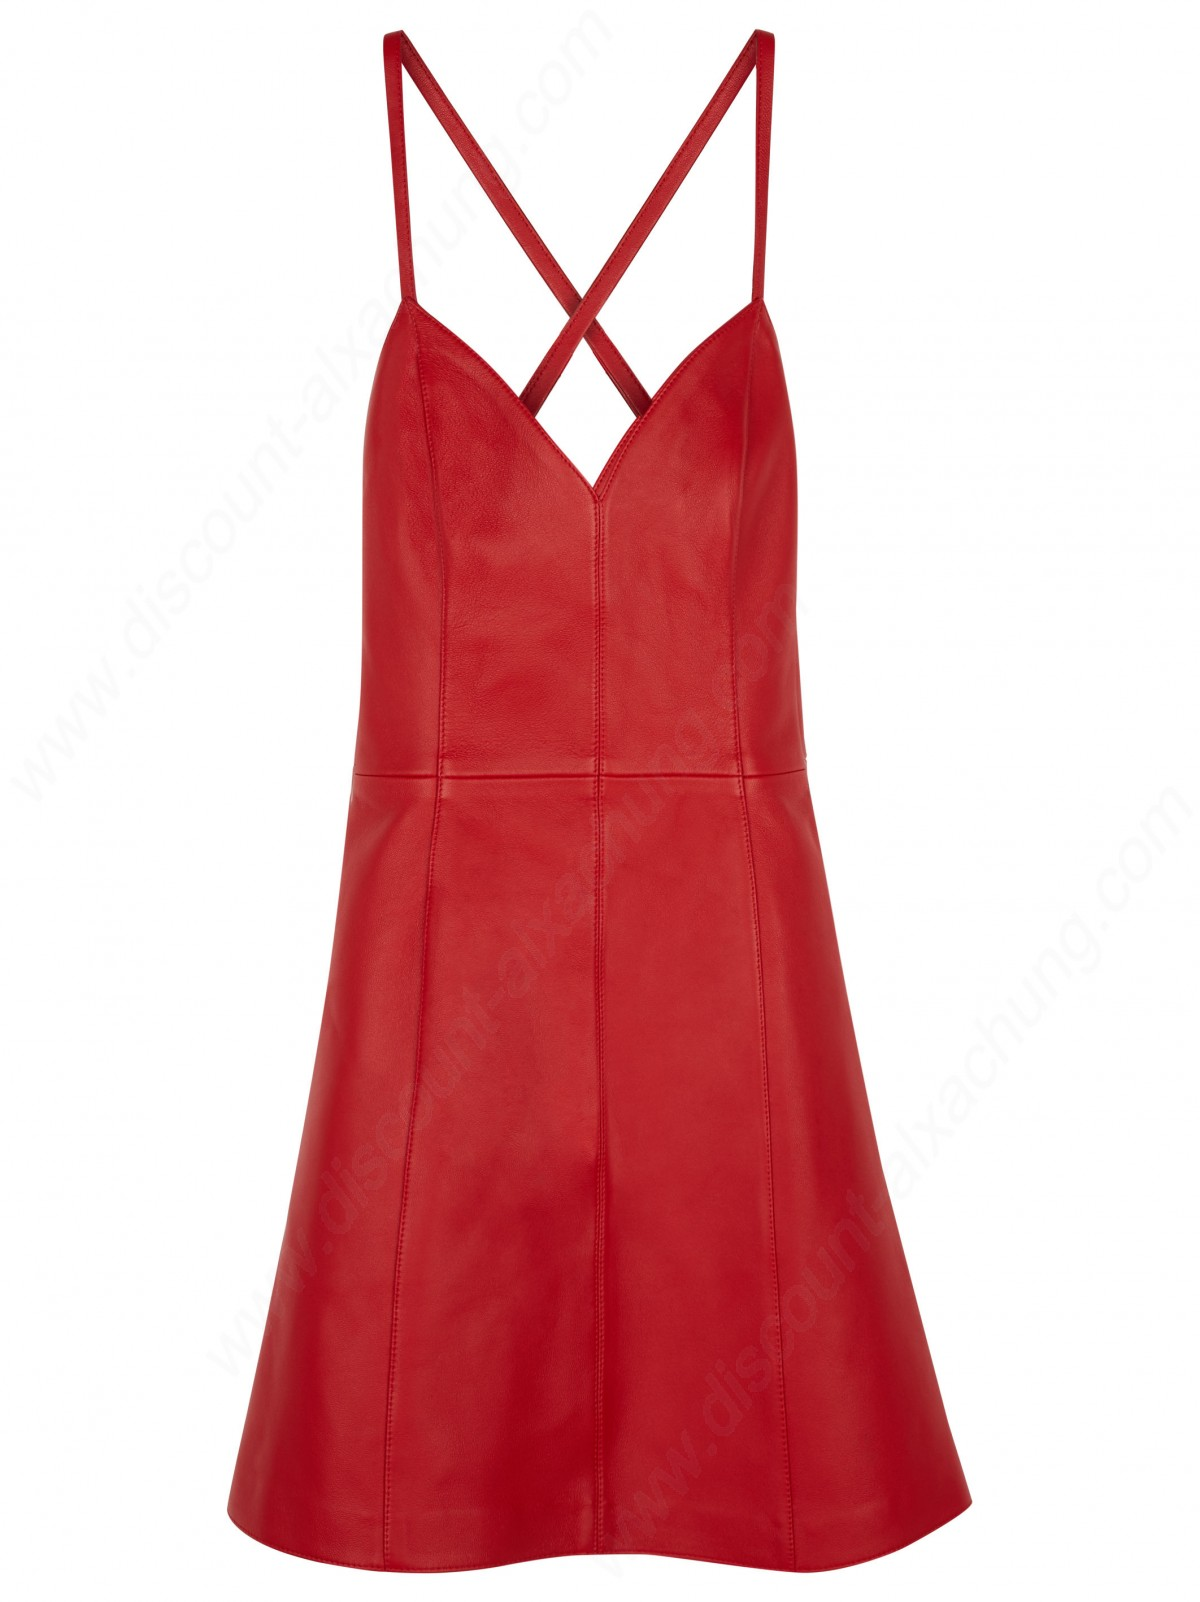 Alexachung Leather Strap Mini Dress - -0